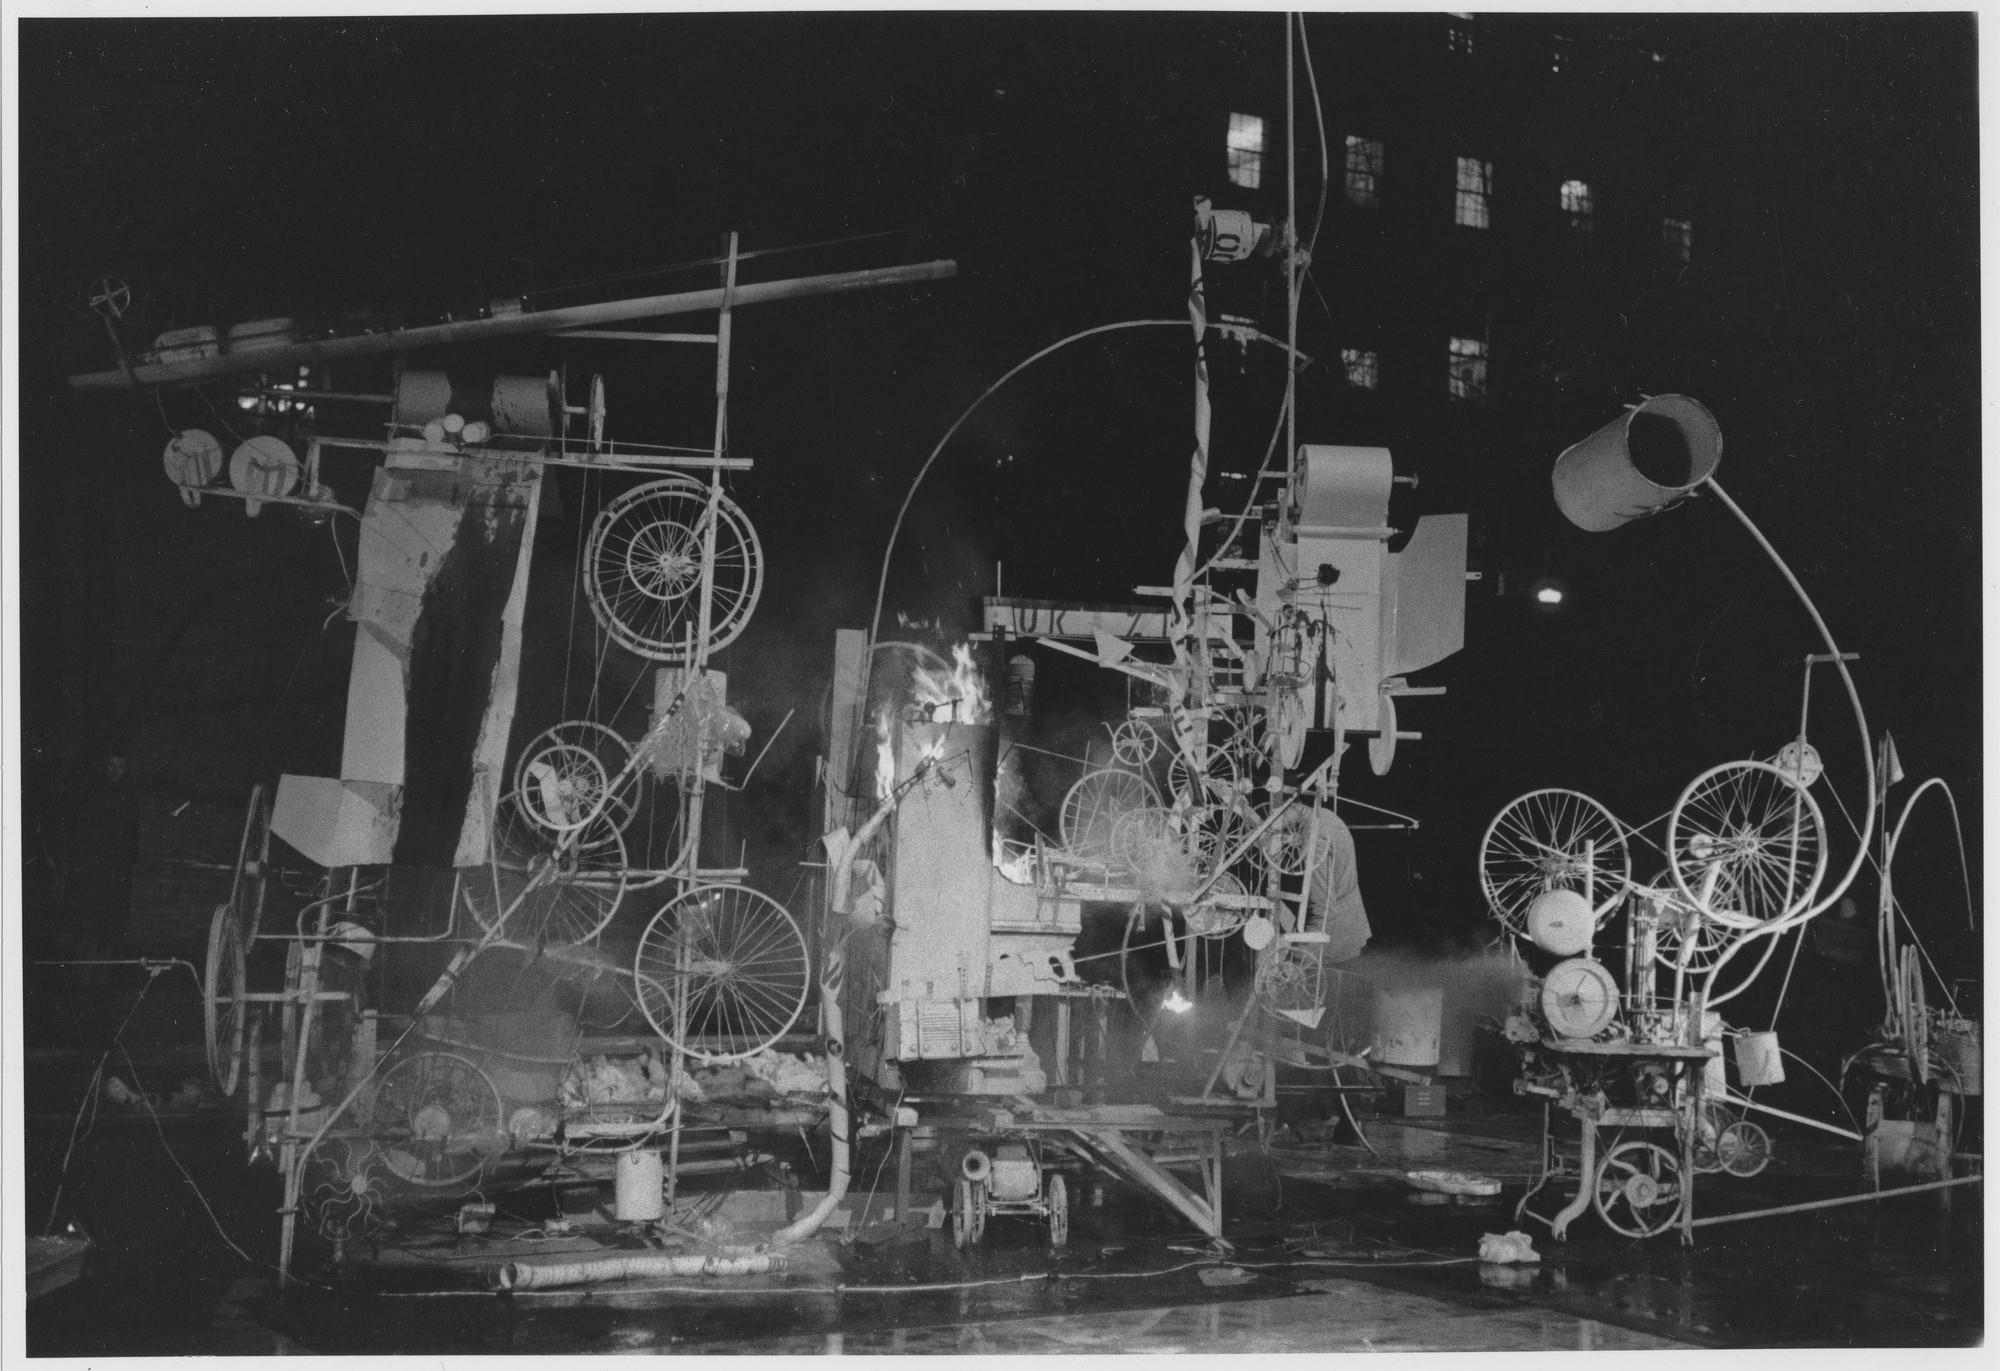 "Installation view of the exhibition, ""Homage to New York:  A self-constructing and self-destroying work of art conceived and built by Jean Tinguely"" March 17, 1960. Photographic Archive. The Museum of Modern Art Archives, New York. IN661.1. Photograph by David Gahr."